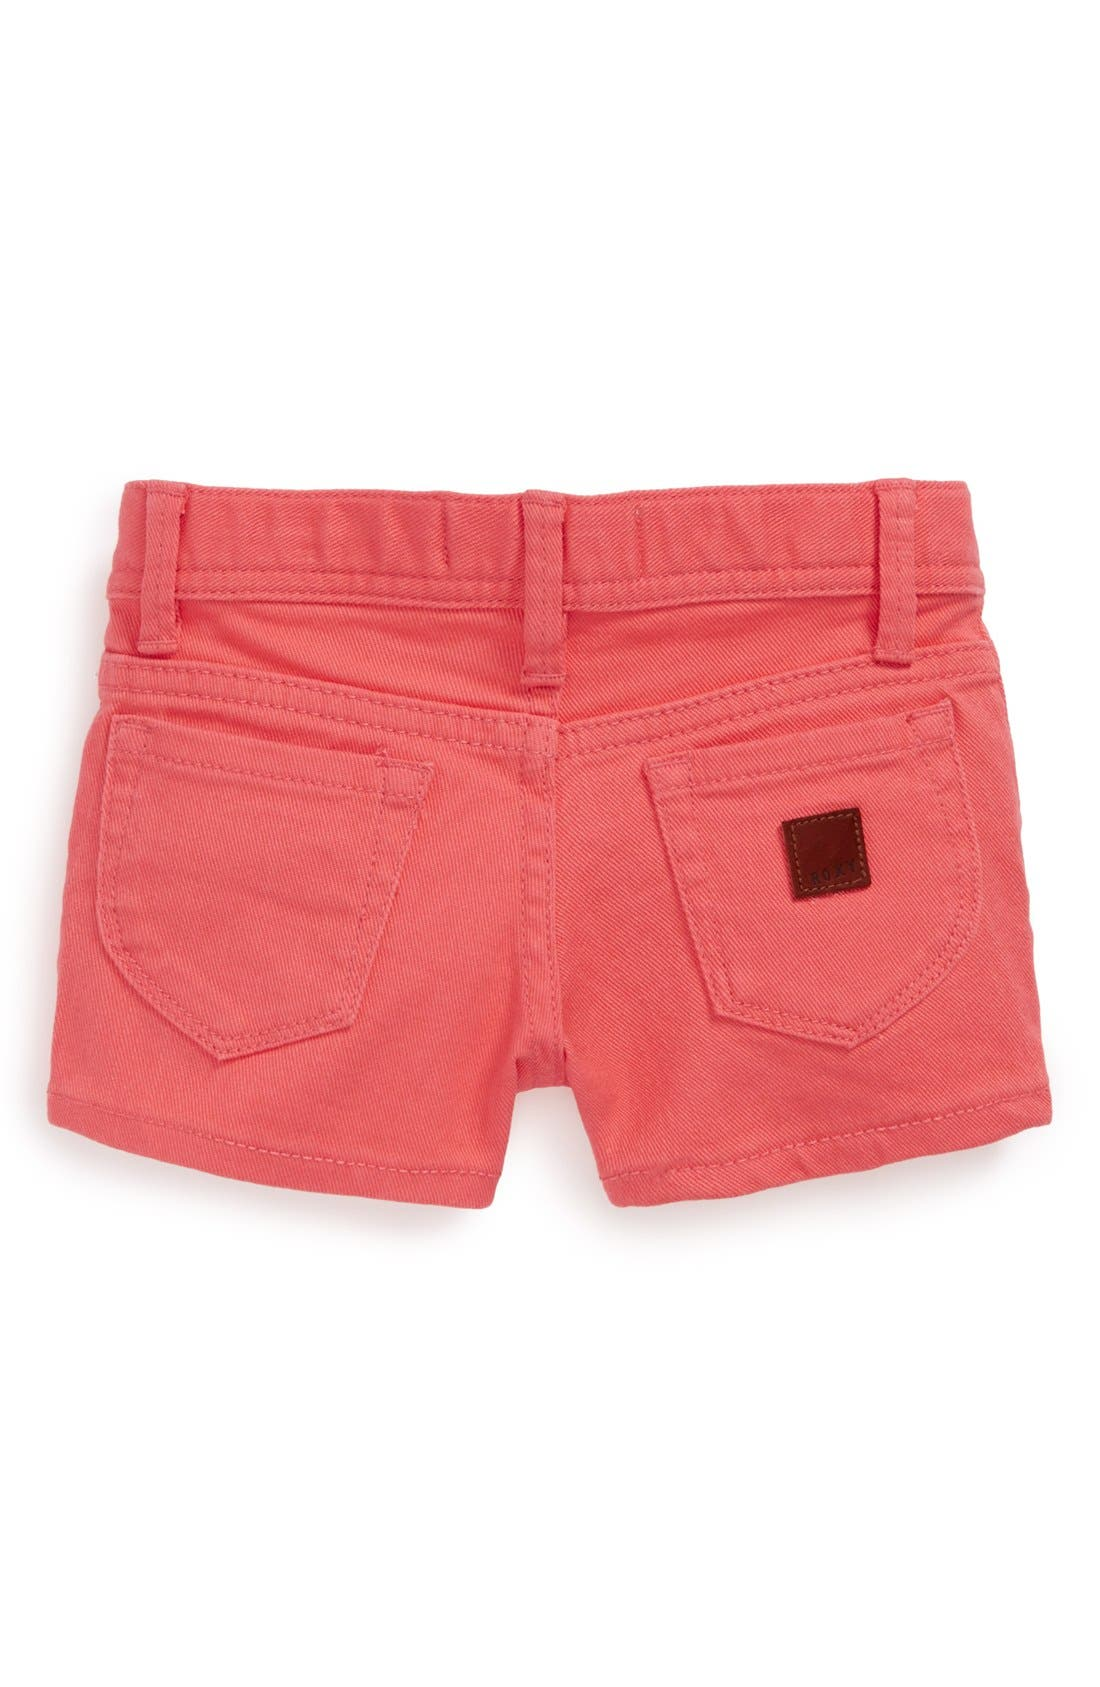 Alternate Image 1 Selected - Roxy 'Lisy' Shorts (Toddler Girls)